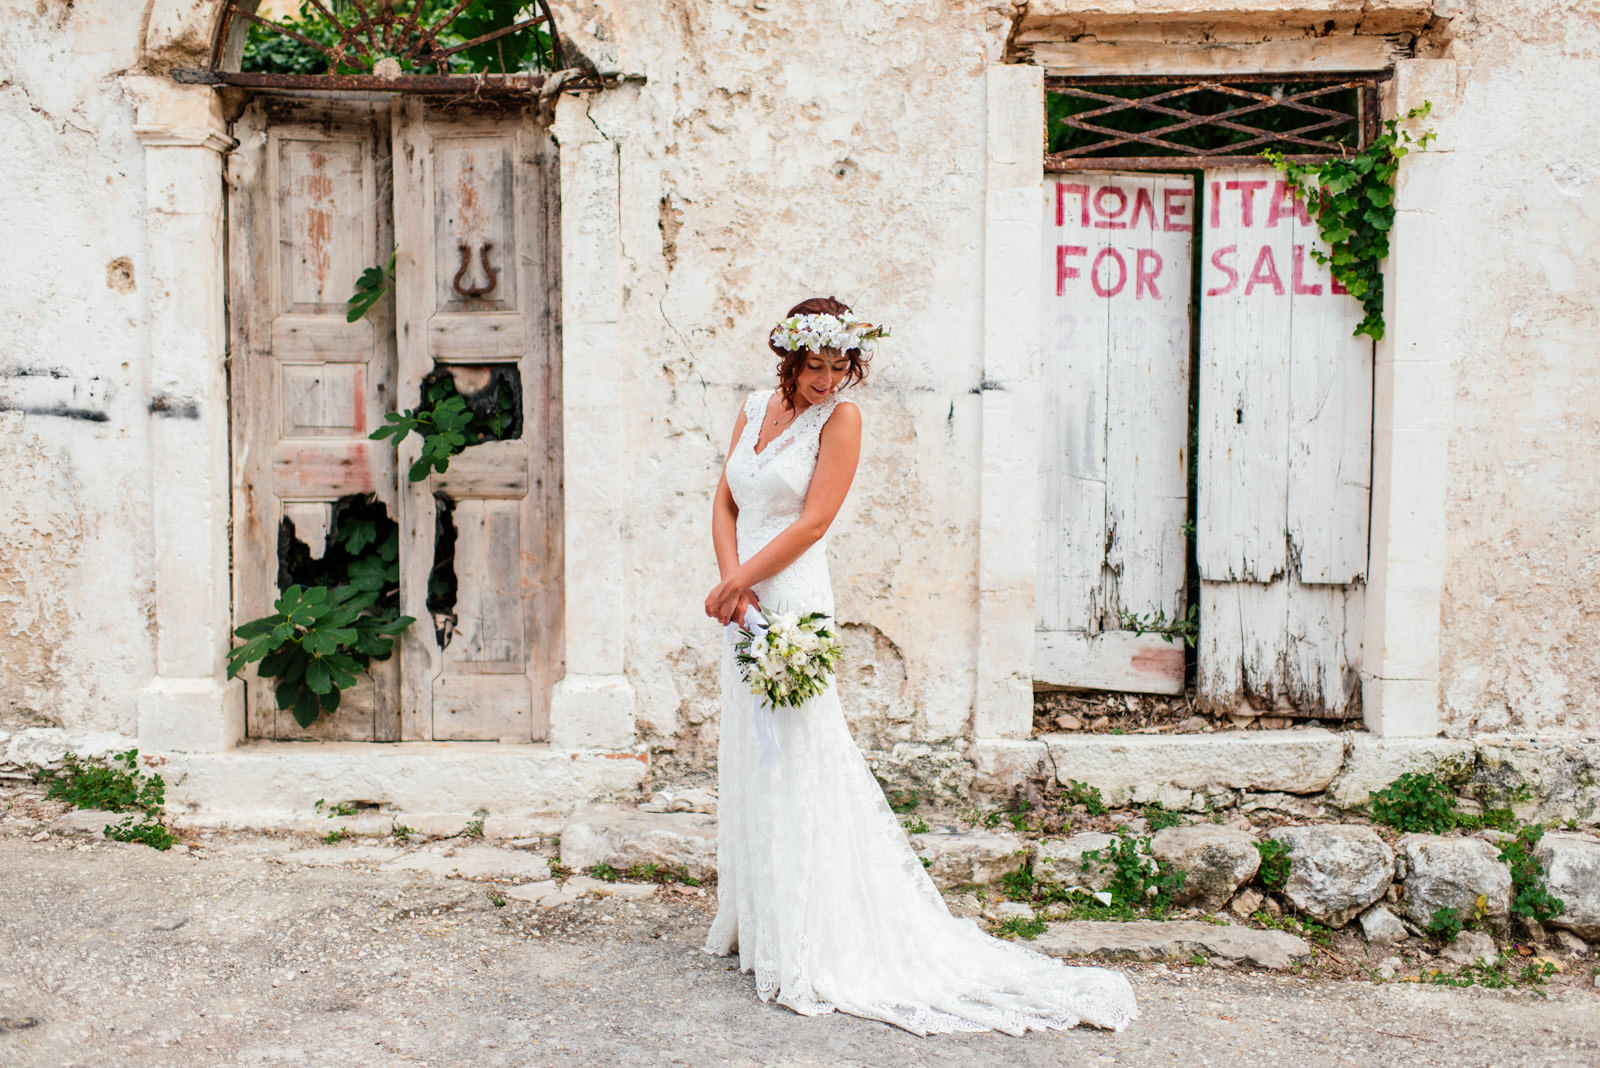 Bride portrait in Assos village Kefalonia